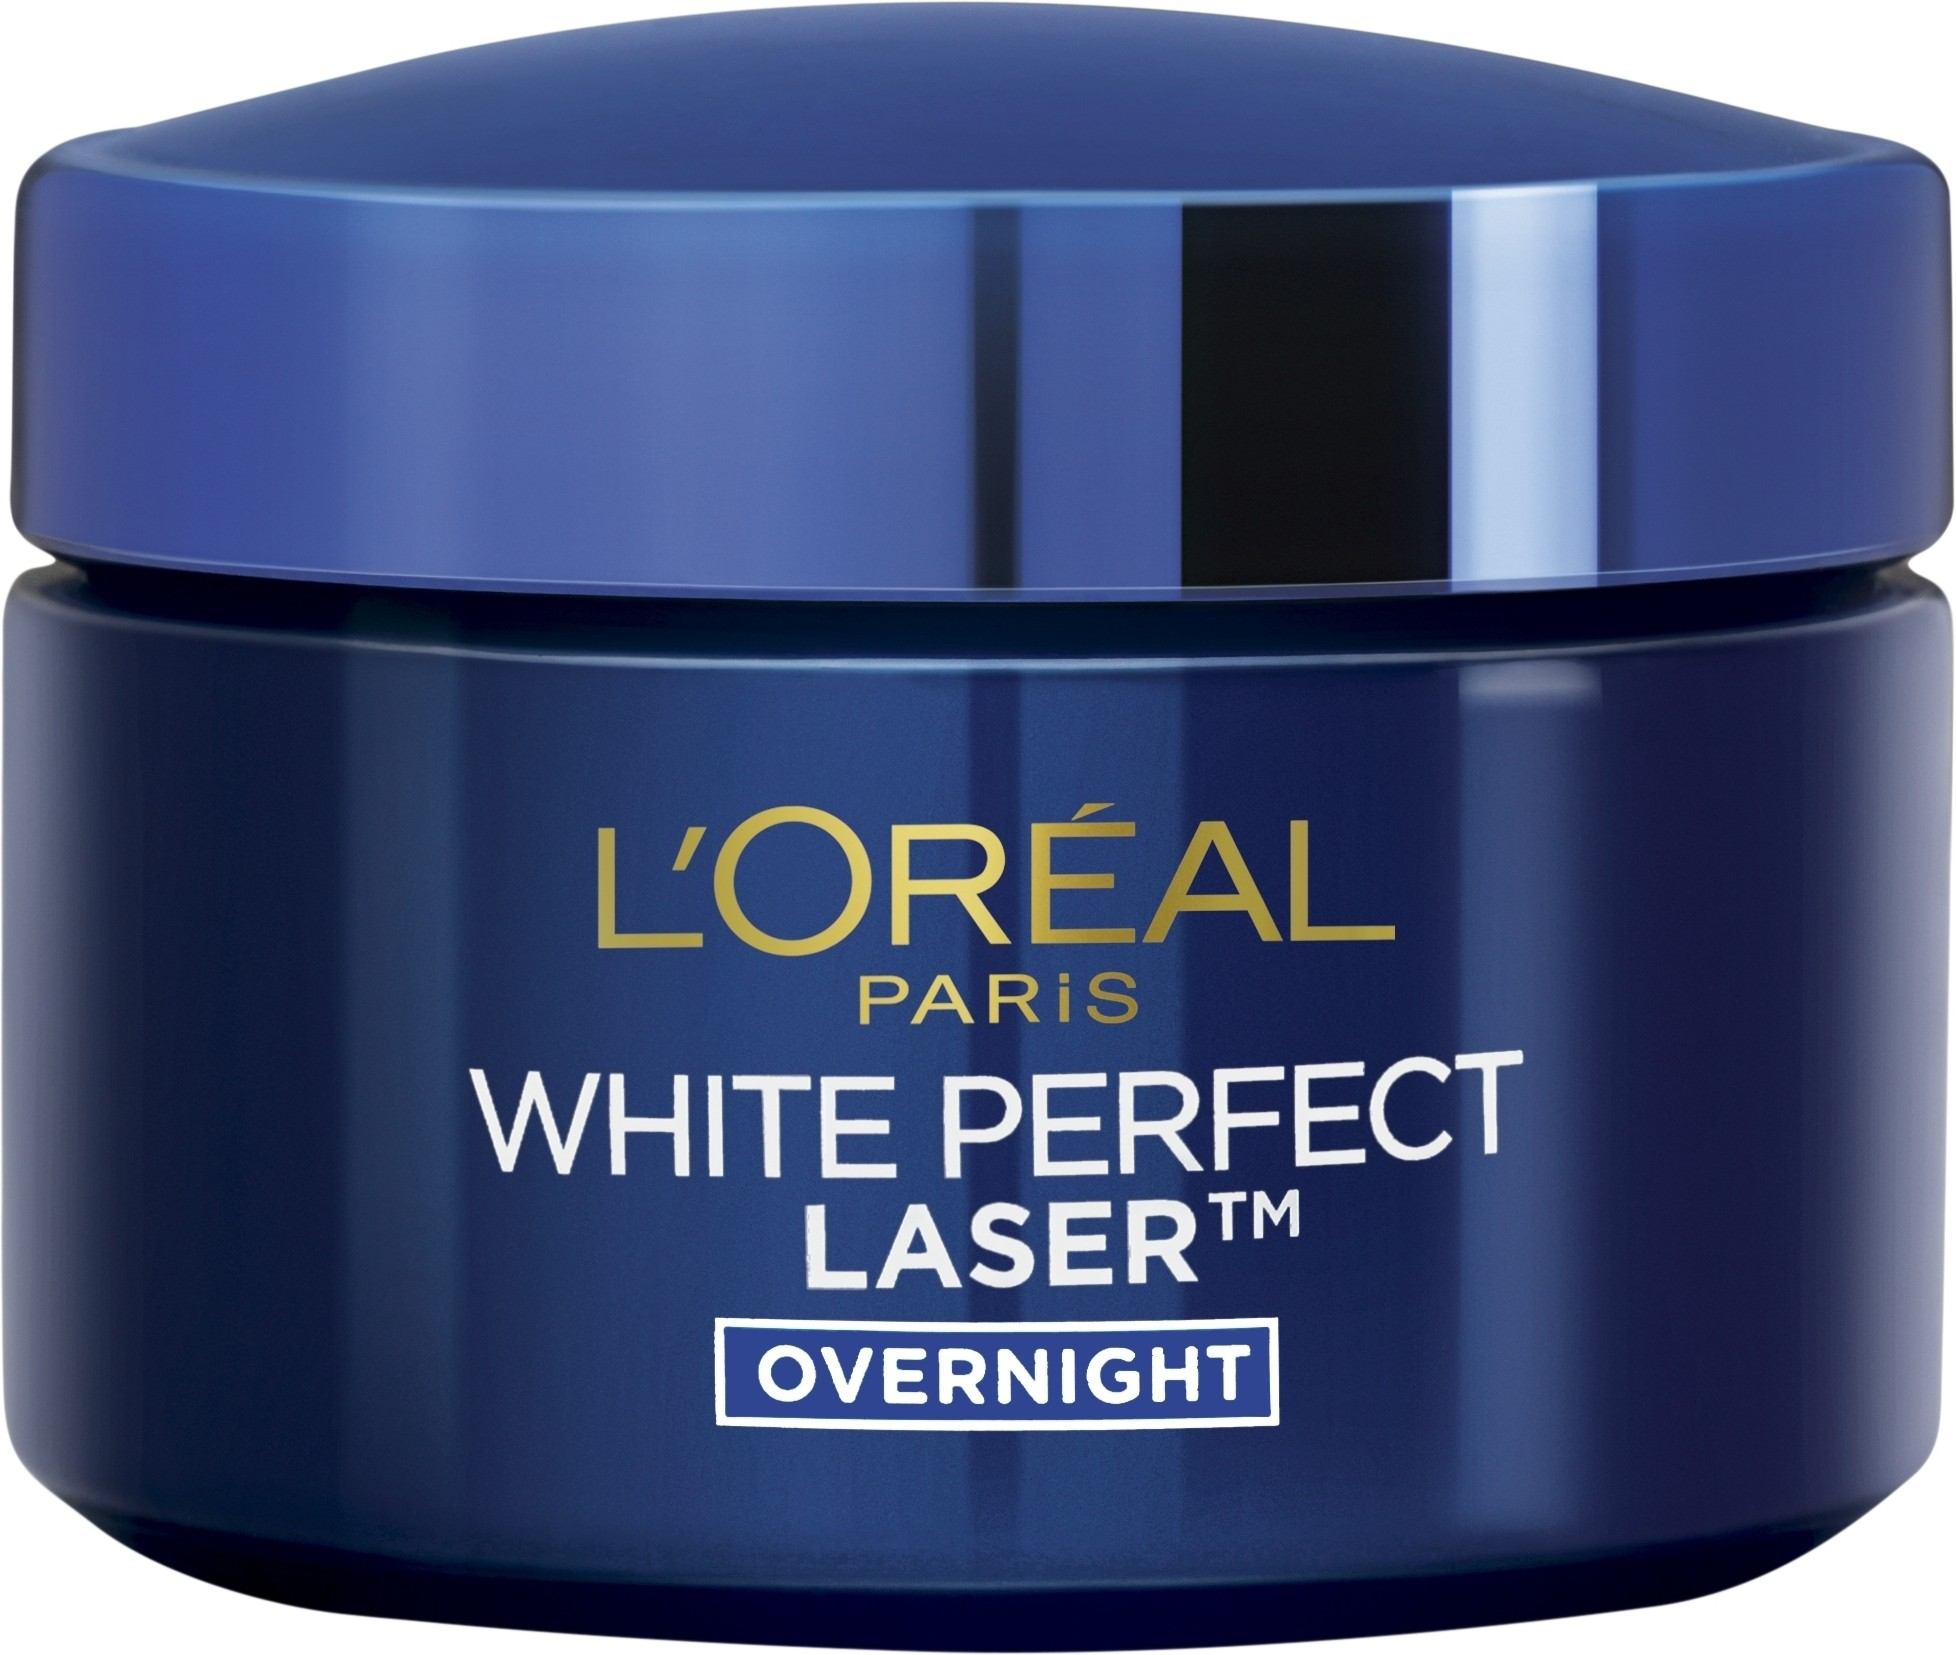 10 Best Skin Whitening And Fairness Creams In India Loreal White Perfect Day Cream Spf 17 Pa Even Tone